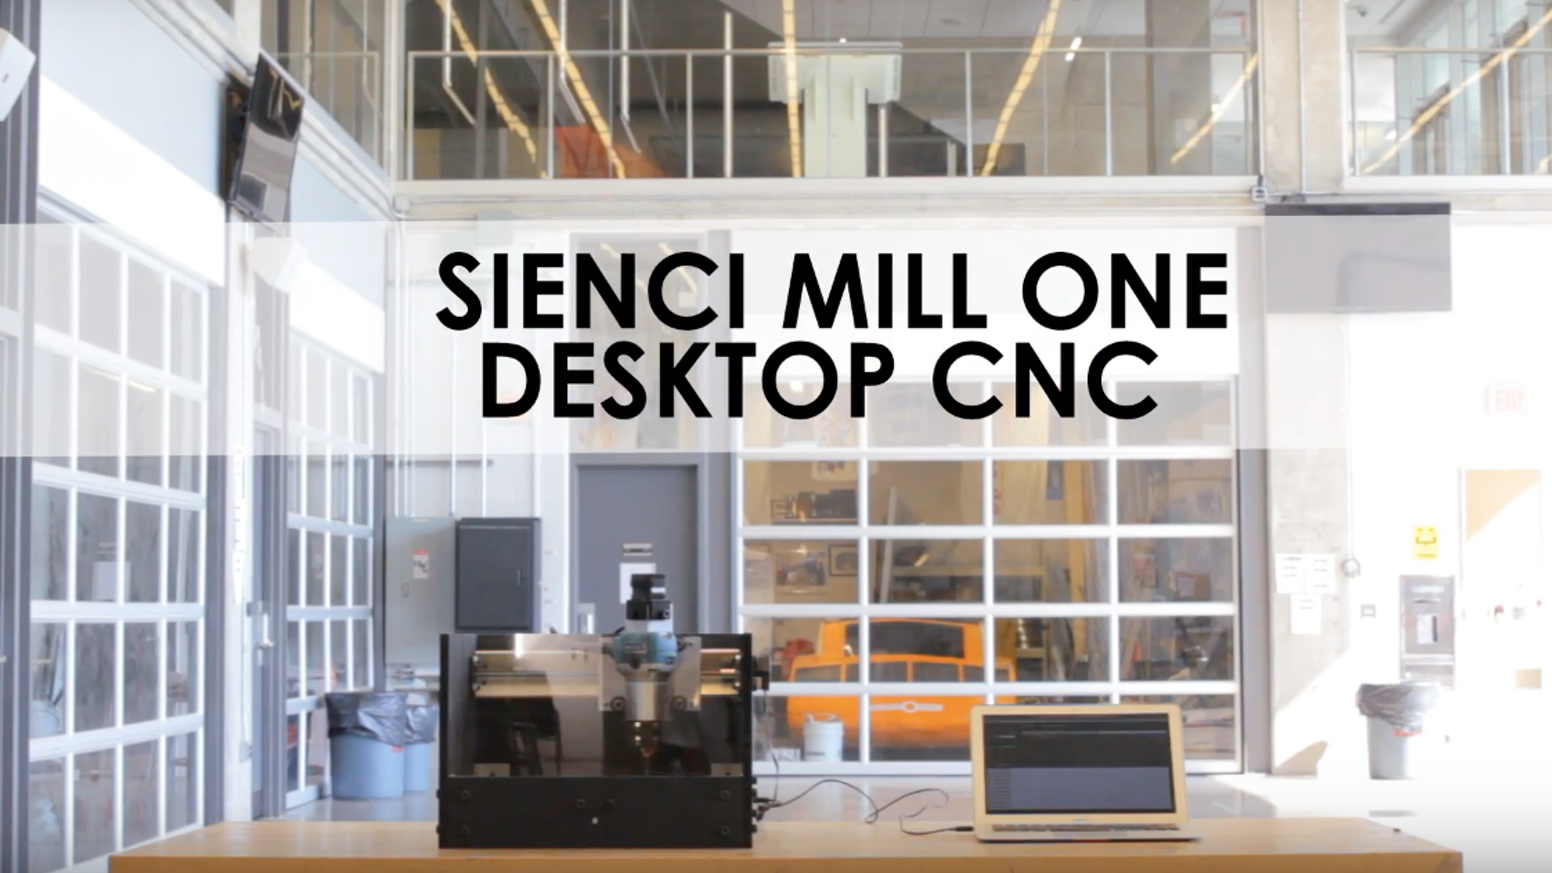 The Sienci Mill One turns your ideas into reality by carving 3D objects from materials like wood, metal, plastic, foam, and PCB.